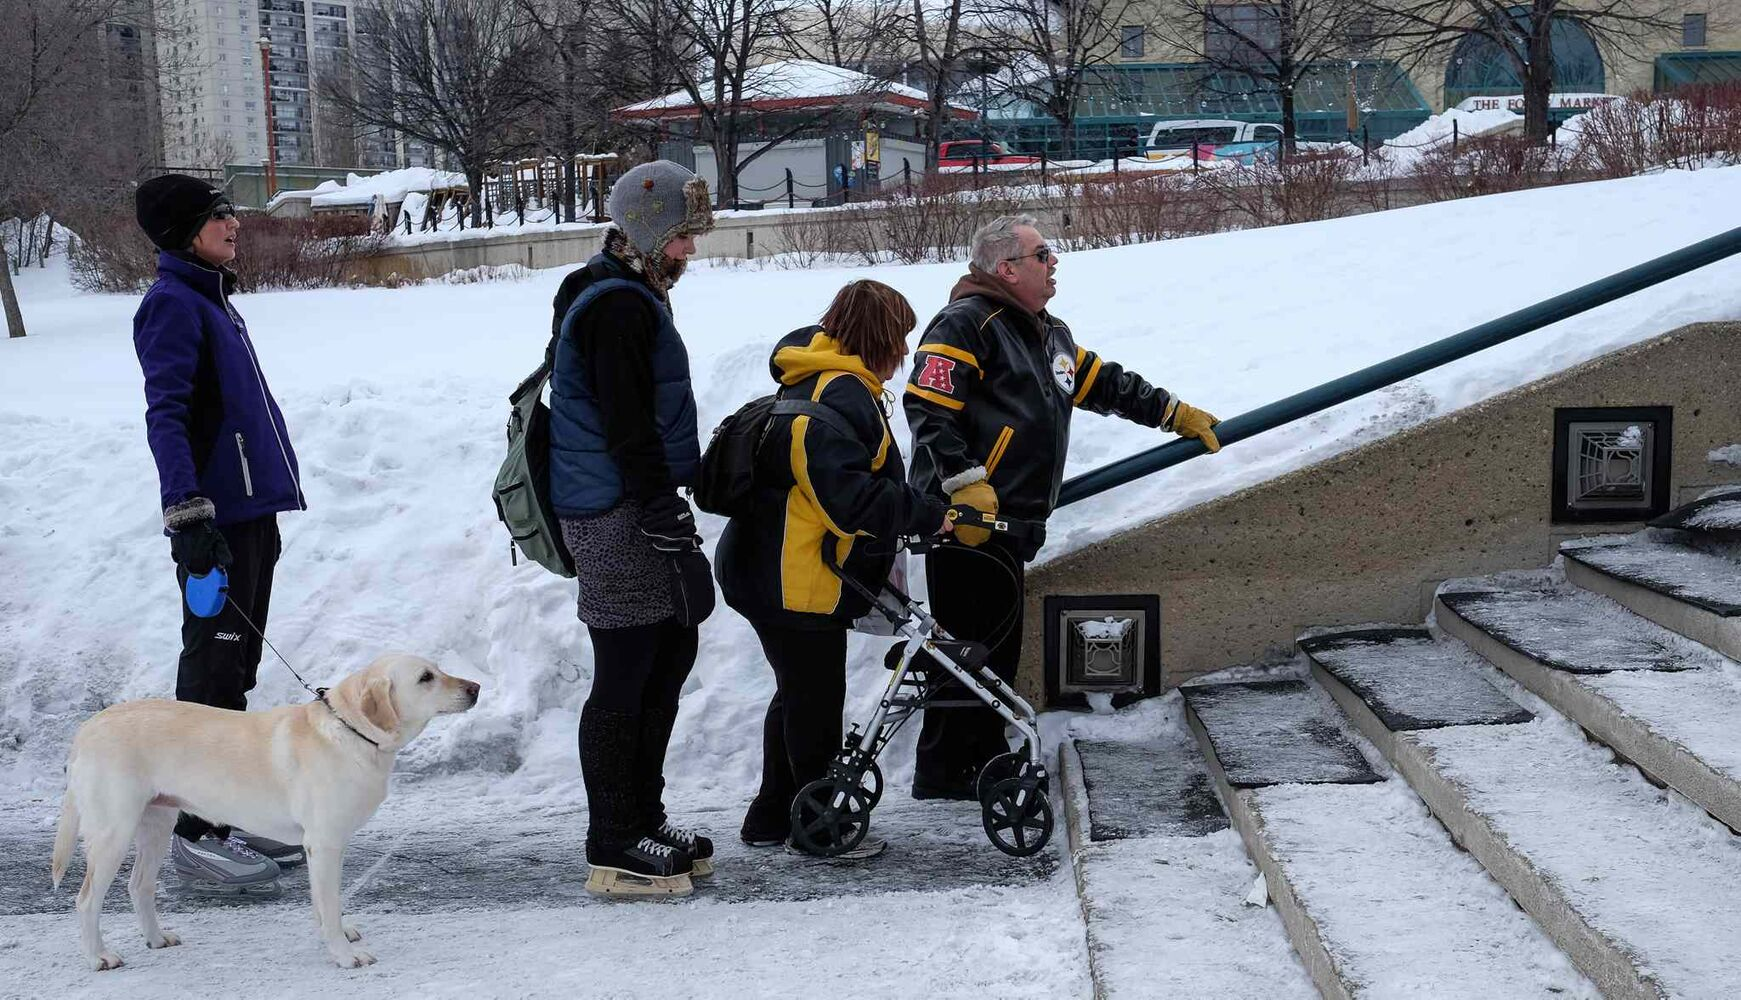 A small line forms as Tom needs to use the hand rail to get up the stairs at The Forks. MIKE DEAL / WINNIPEG FREE PRESS